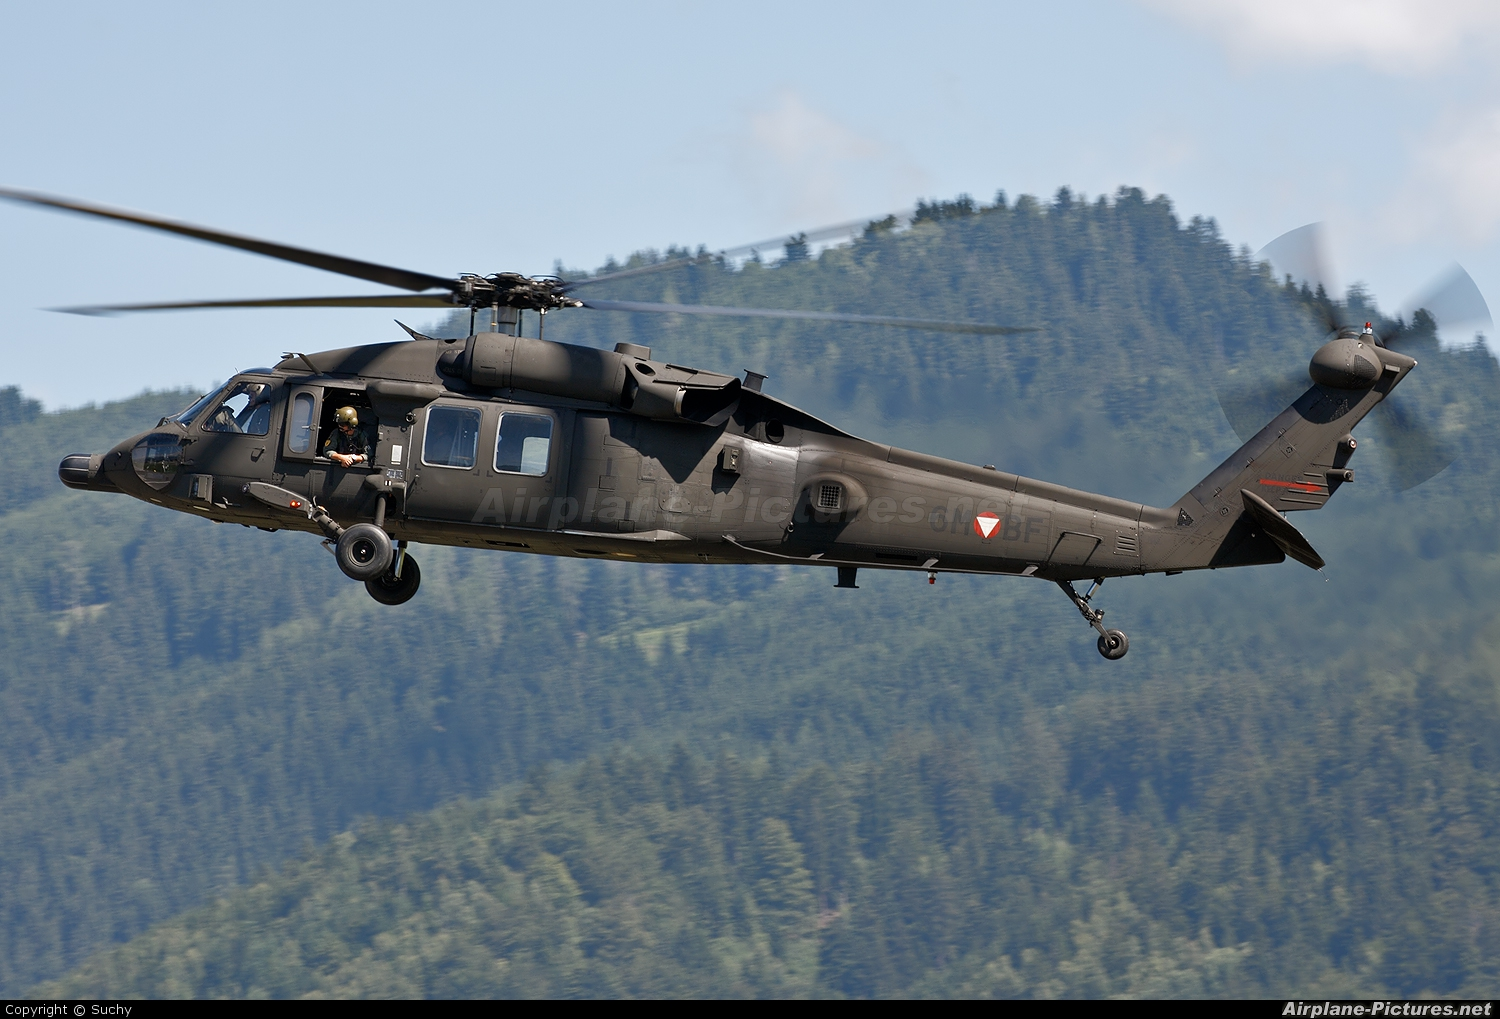 blackhawk for sale helicopter with 6m Bf Austria Air Force Sikorsky S 70a Black Hawk on 6m Bf Austria Air Force Sikorsky S 70a Black Hawk further Airi landing also Yf 23 Black Widow Tactical Fighter moreover File Israeli Air Force  UH 60 Black Hawk likewise File Sikorsky S 70 Blackhawk  Hkp 16A  161229 04  8364671659.